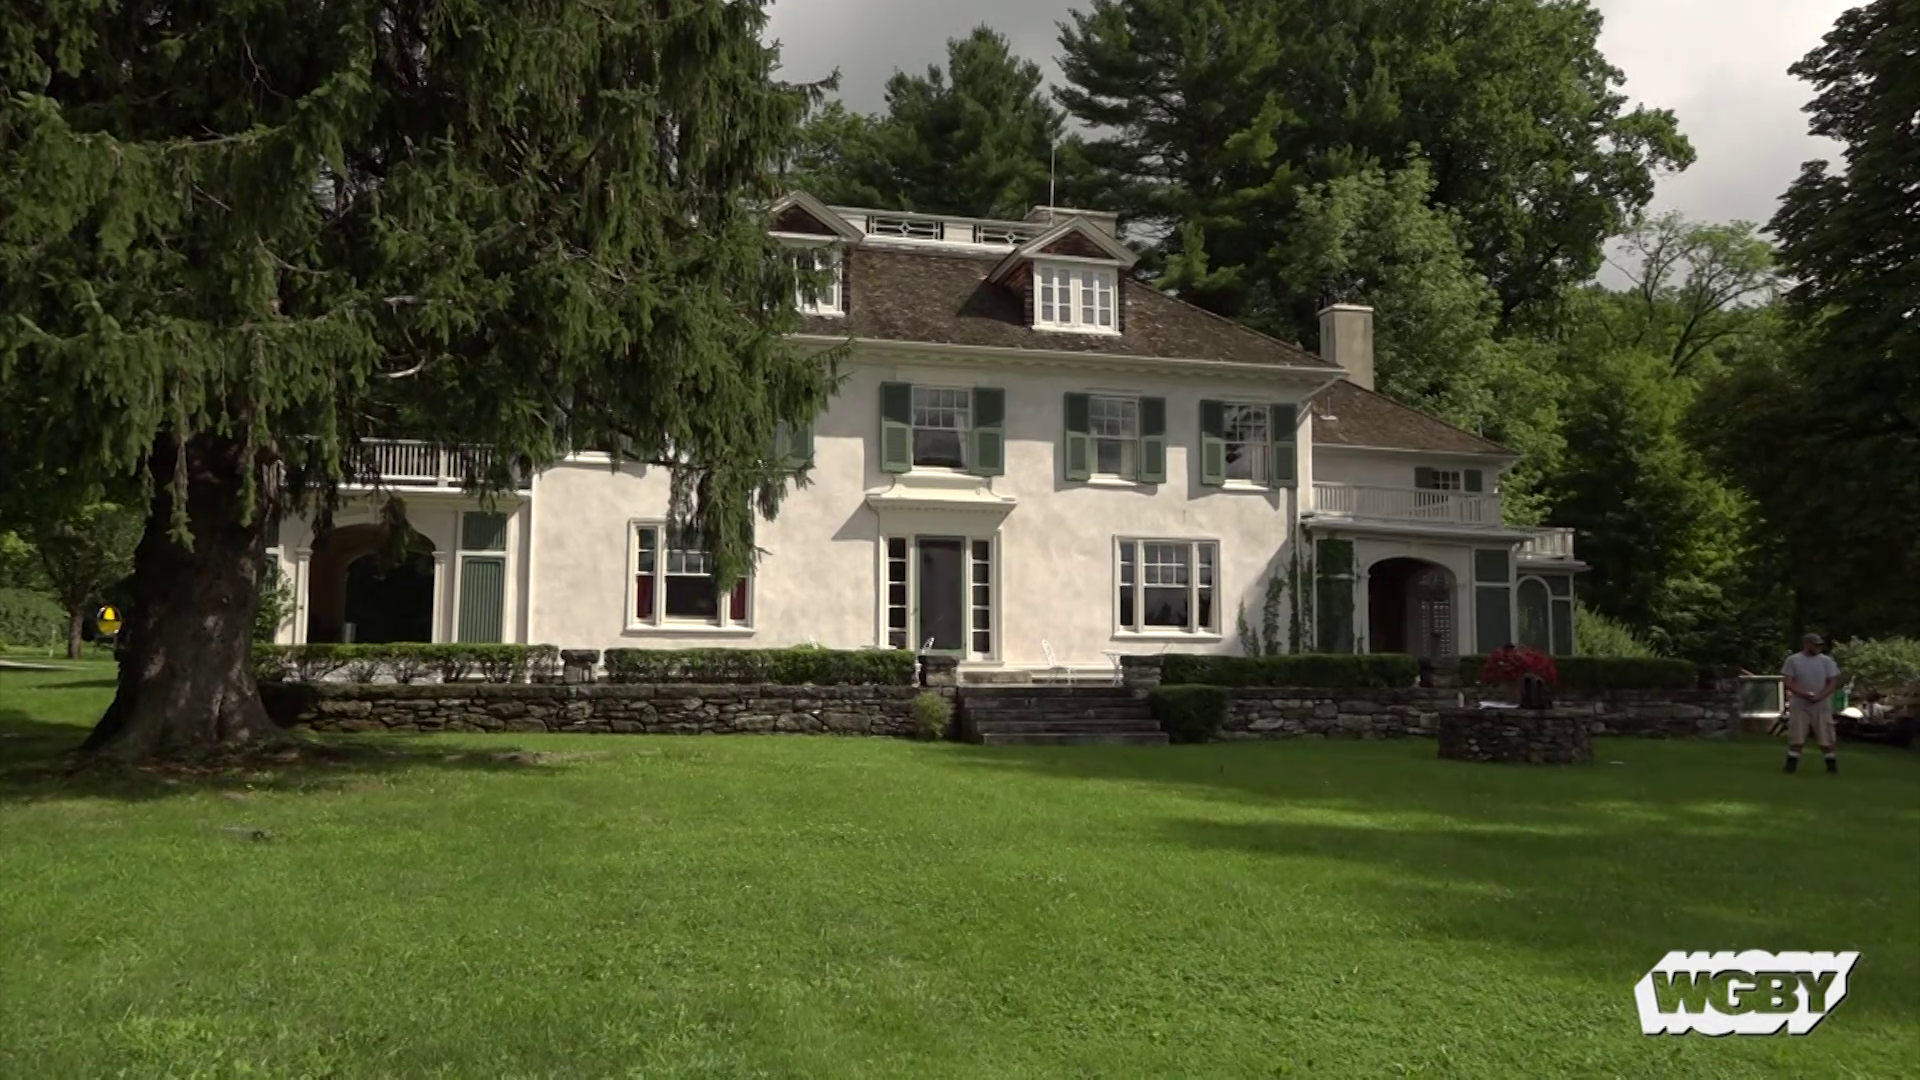 Chesterwood, the country retreat of Daniel Chester French located in Stockbridge, MA, is where the Lincoln Memorial sculptor crafted many of his works.